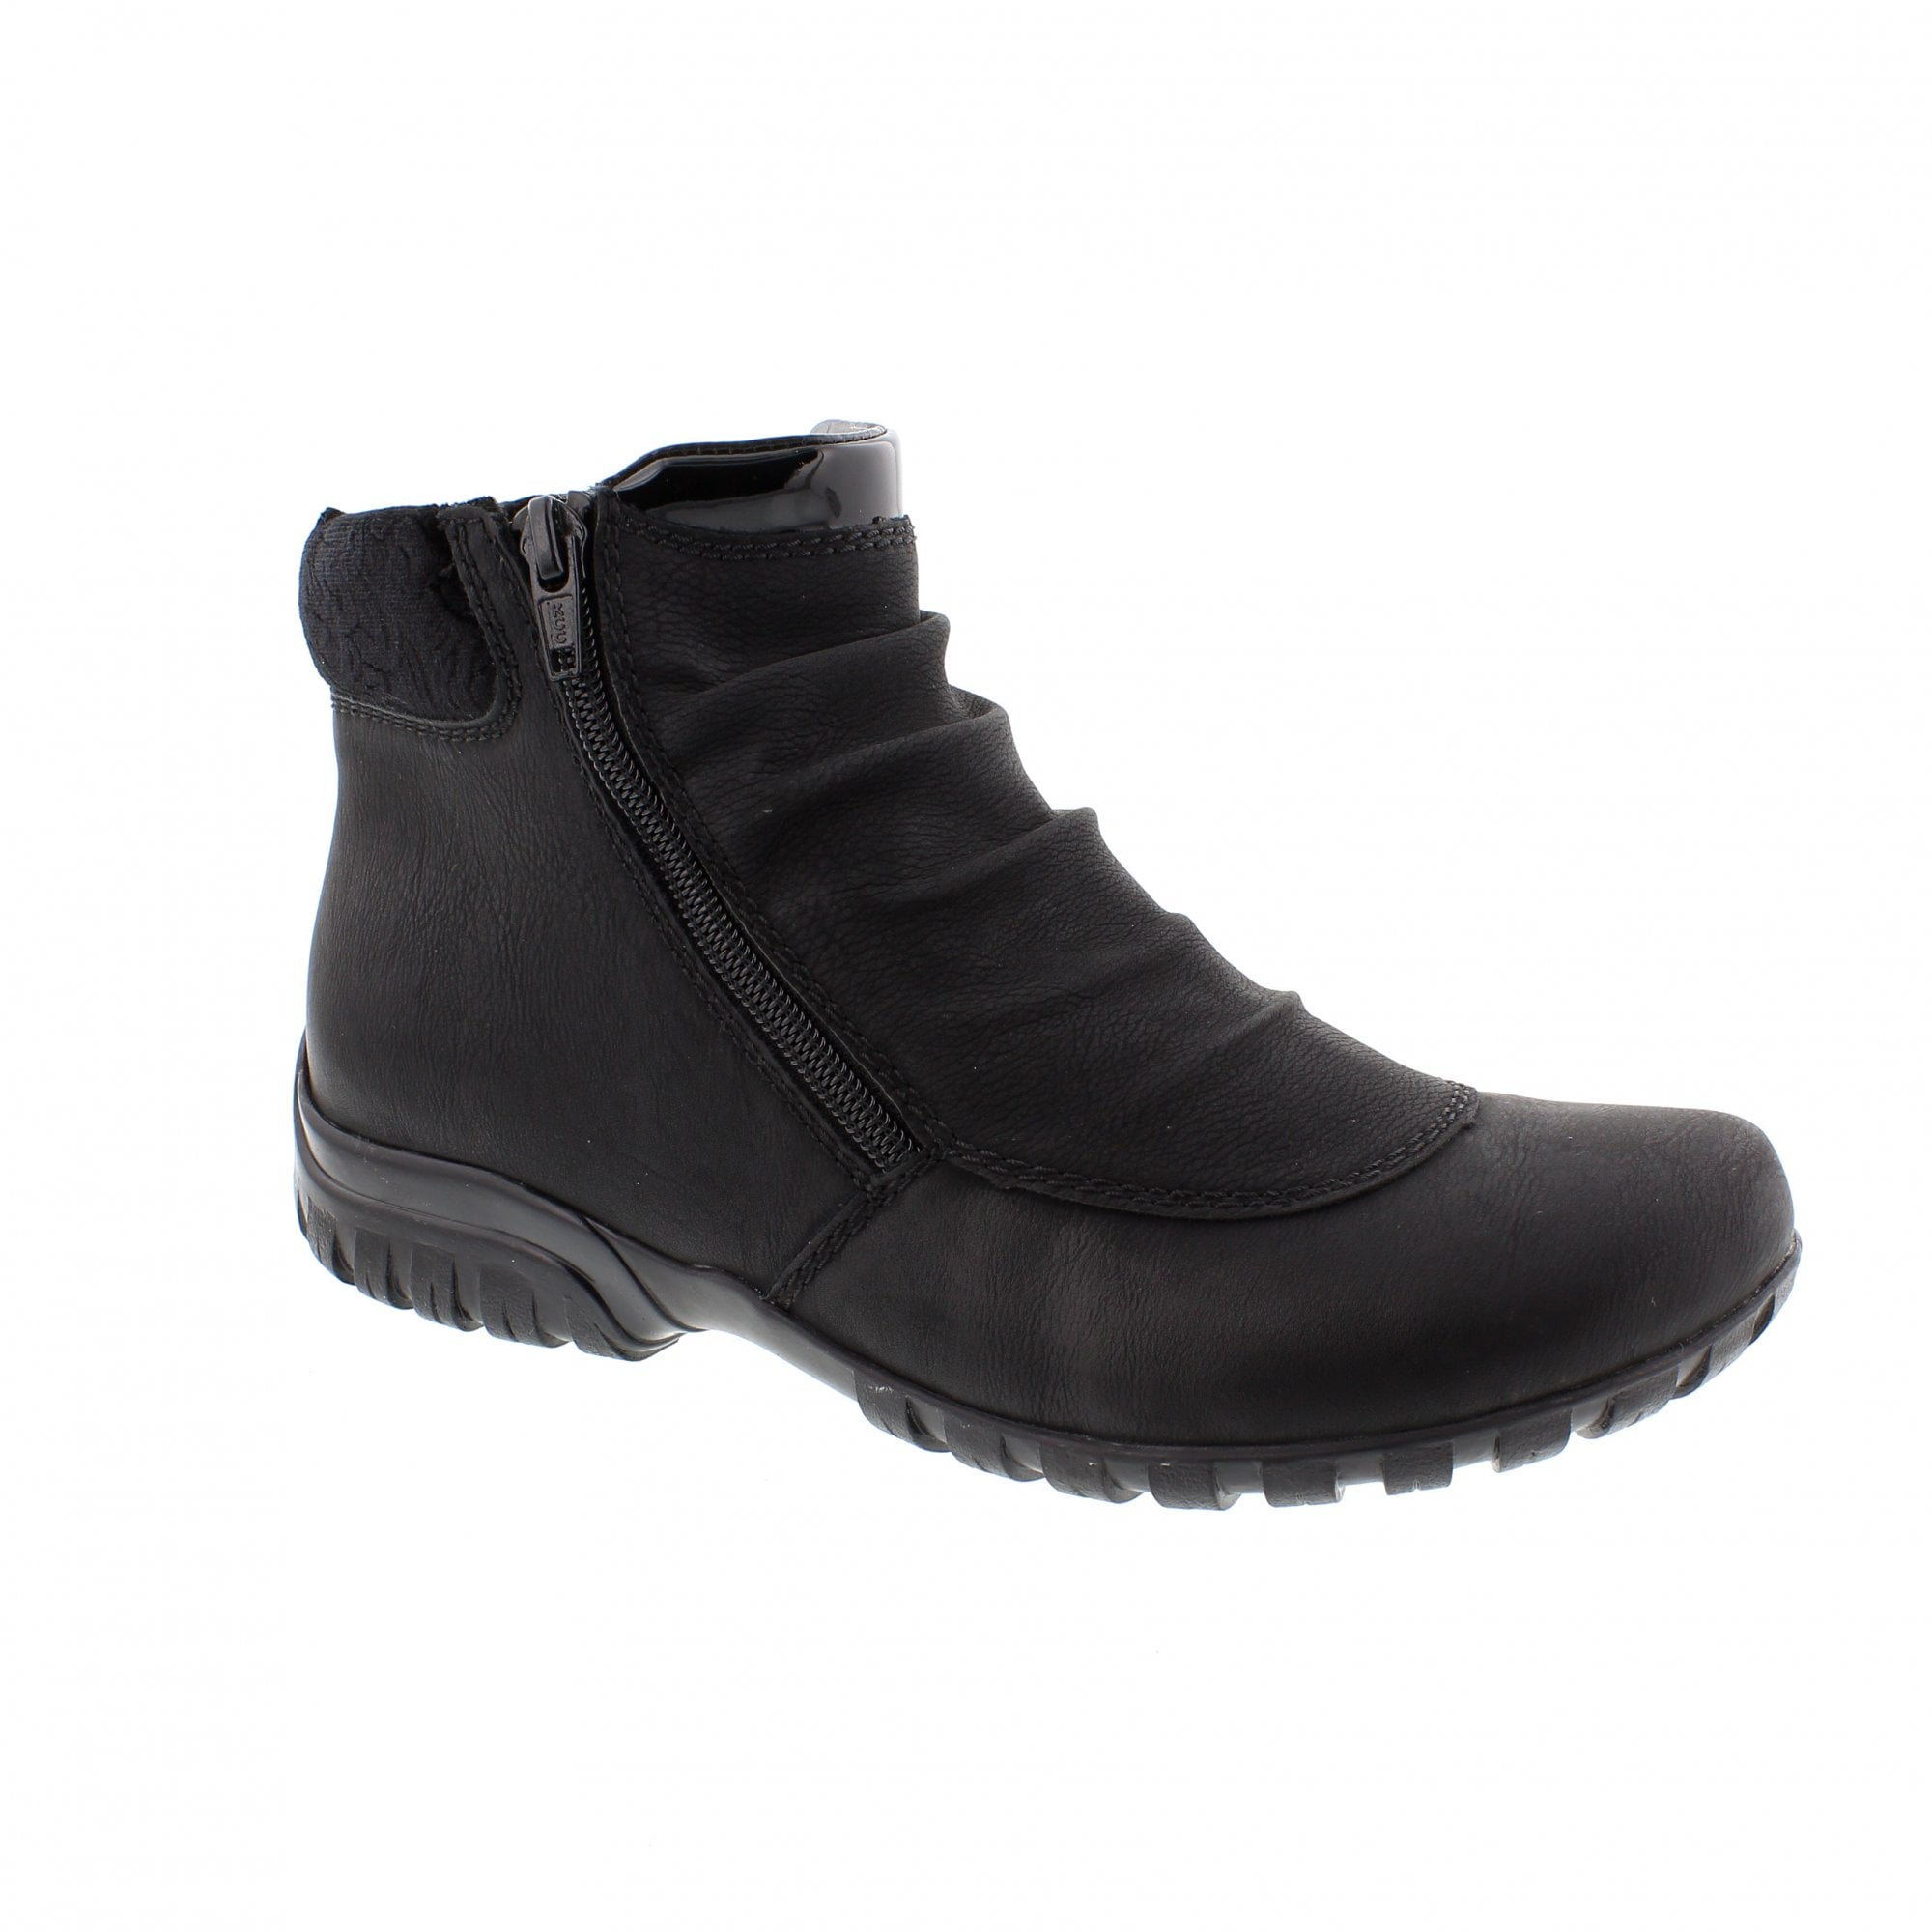 423bb7a6073 Rieker Z4671-00 Black Womens Ankle Boots | Rogerson Shoes